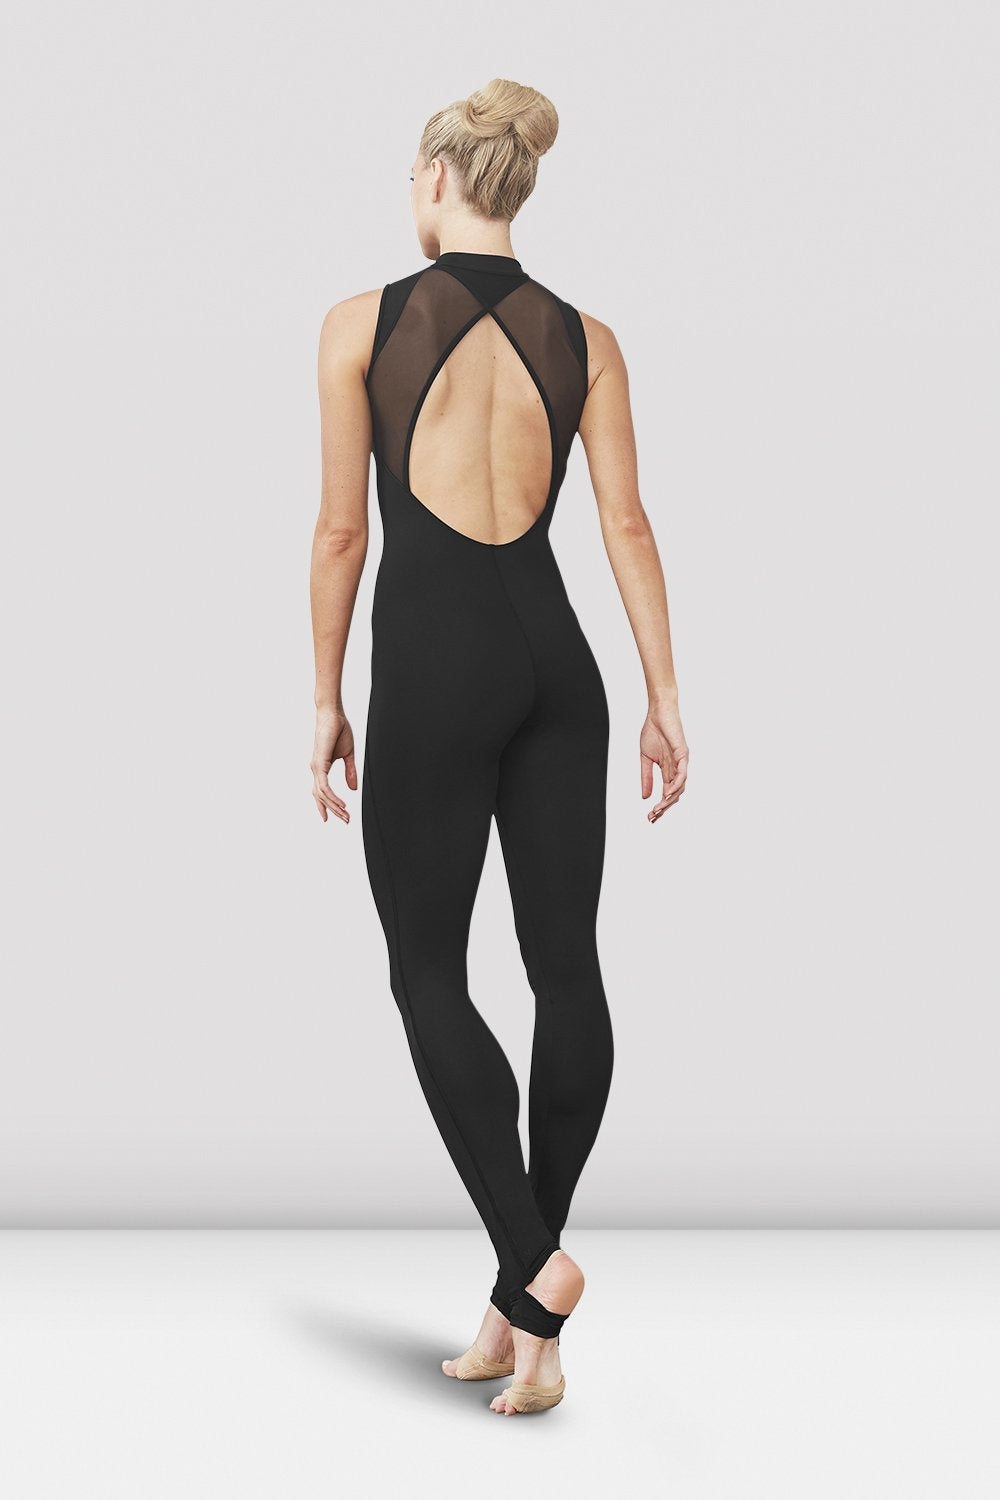 Ladies Kyara Open Back Stirrup Unitard - BLOCH US